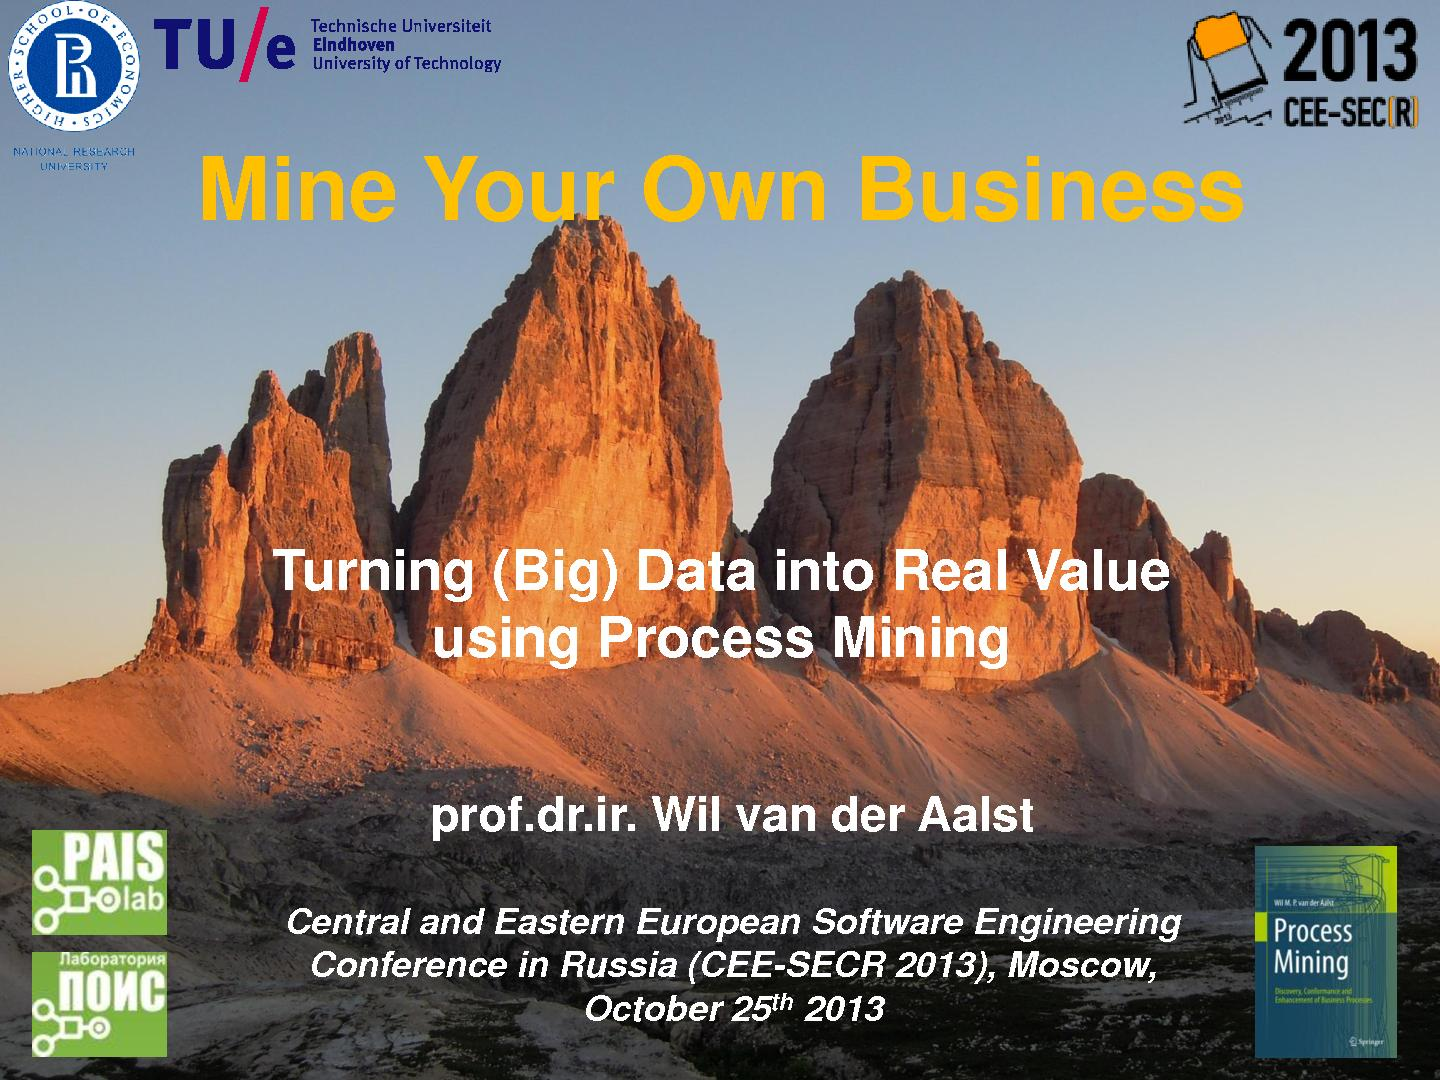 Файл:«Mine Your Own Business» — Using Process Mining to Turn Big Data into Real Value (Wil van der Aalst, SECR-2013).pdf